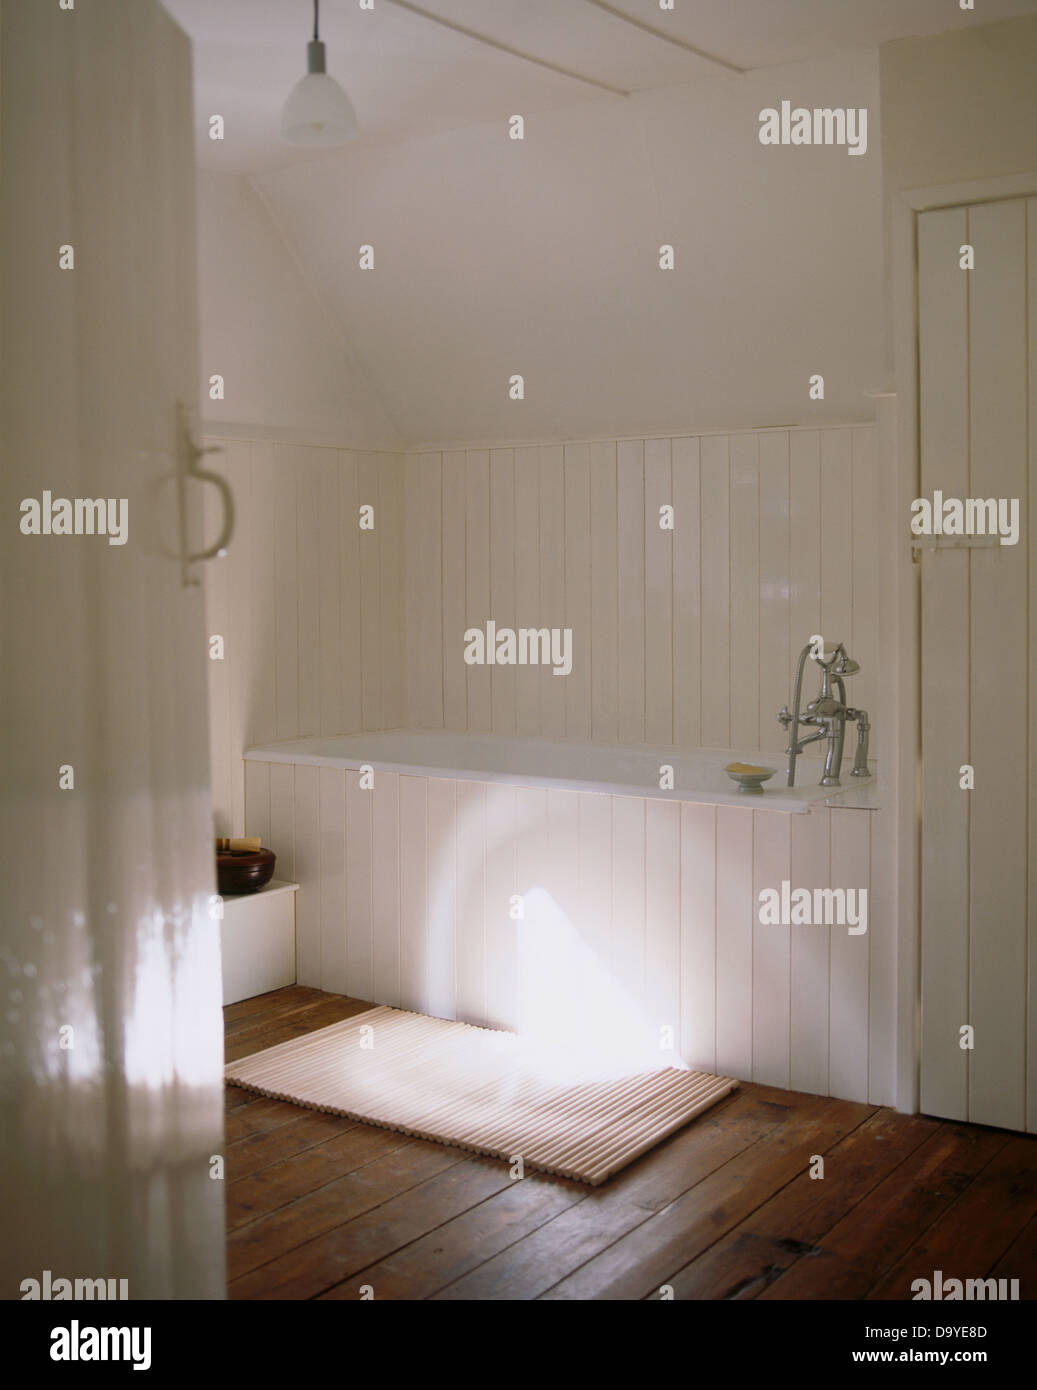 View through open door into a simple white bathroom with wooden floor and painted tongue+groove paneled walls and Stock Photo